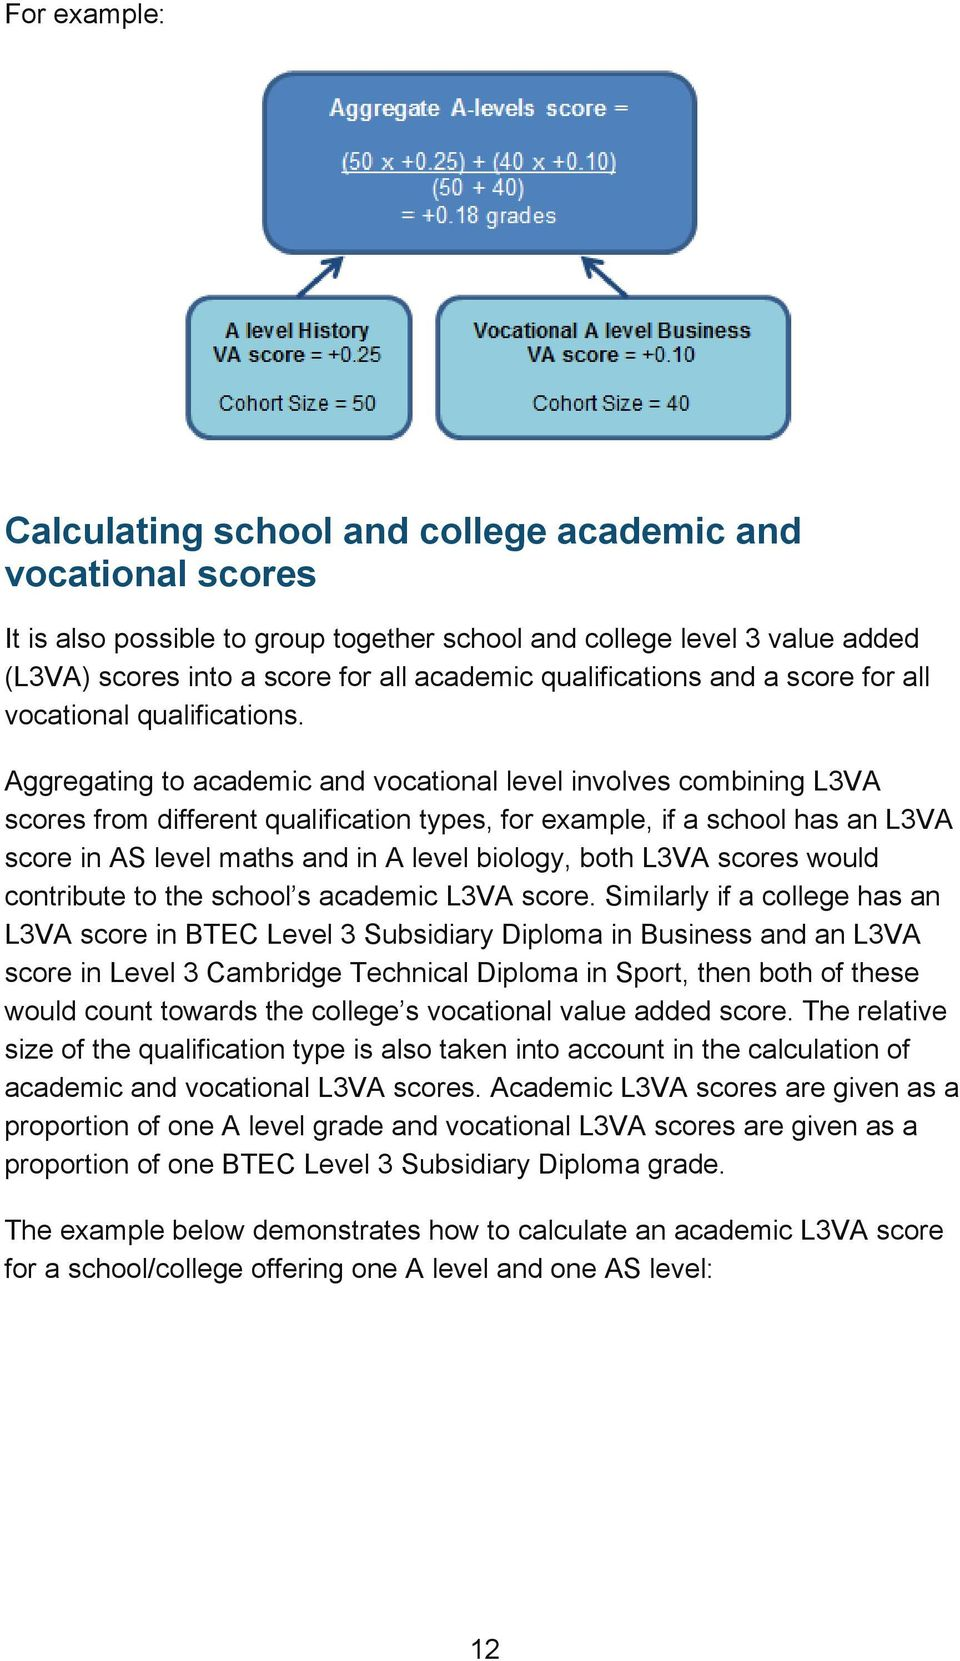 Aggregating to academic and vocational level involves combining L3VA scores from different qualification types, for example, if a school has an L3VA score in AS level maths and in A level biology,